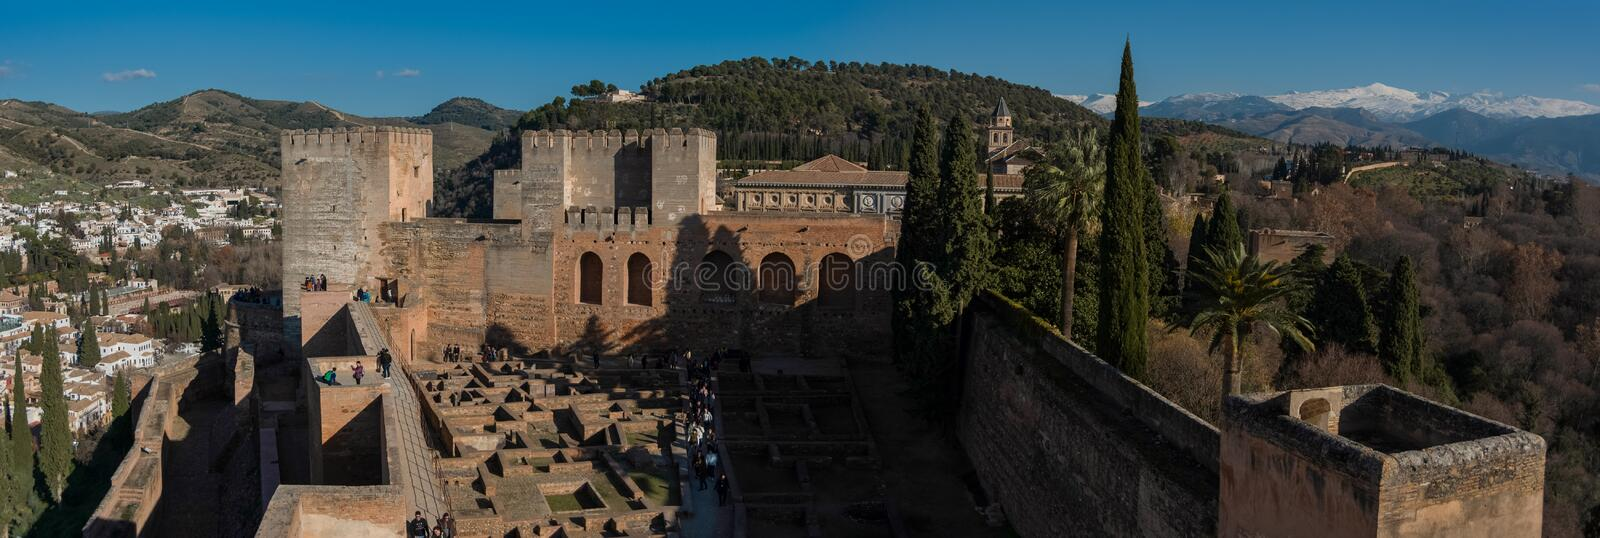 View of courtyard, walls and tower of Alcazaba, citadel of Alhambra, Nasrid Emirate fortress, European travel landmark in stock images